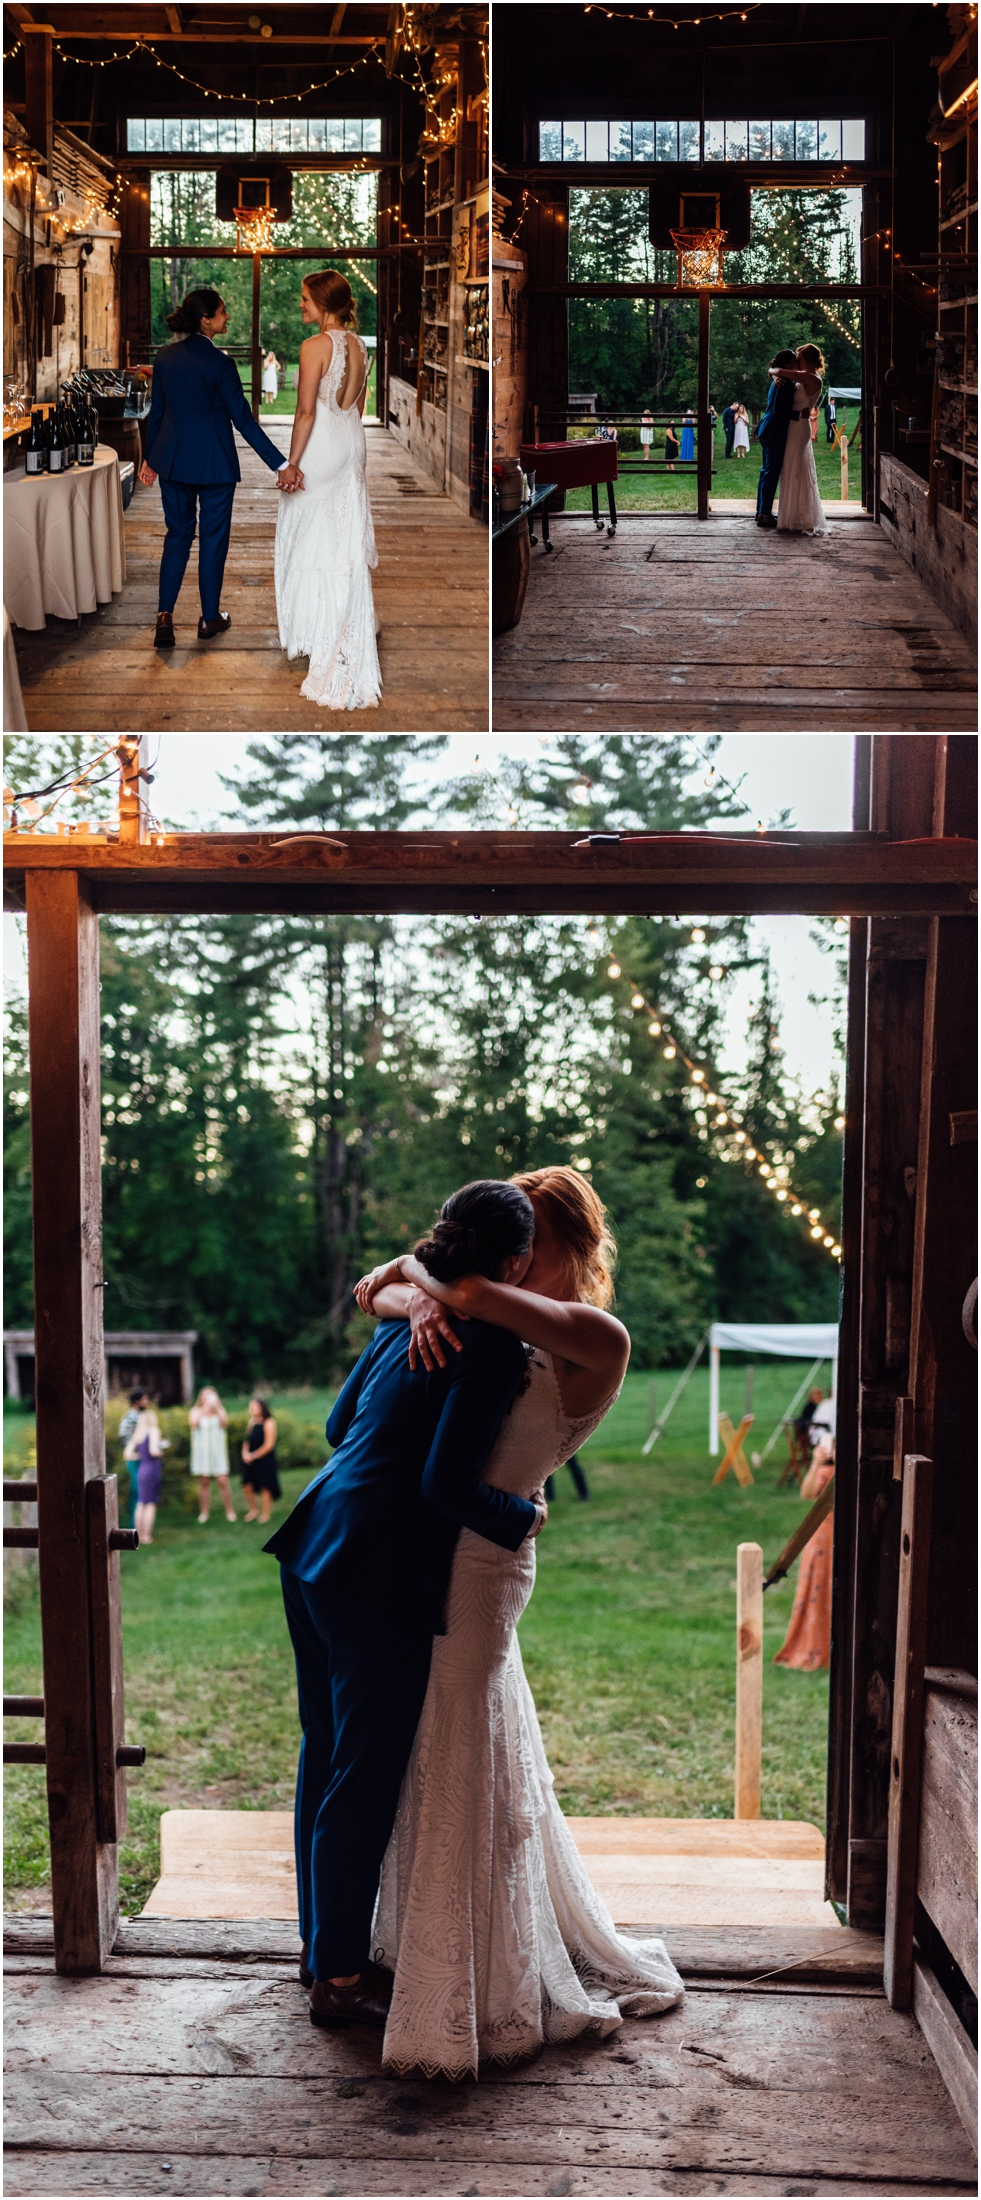 Kate_and_Michele_New_Hampshire_wedding_the_photo_farm_0635.jpg